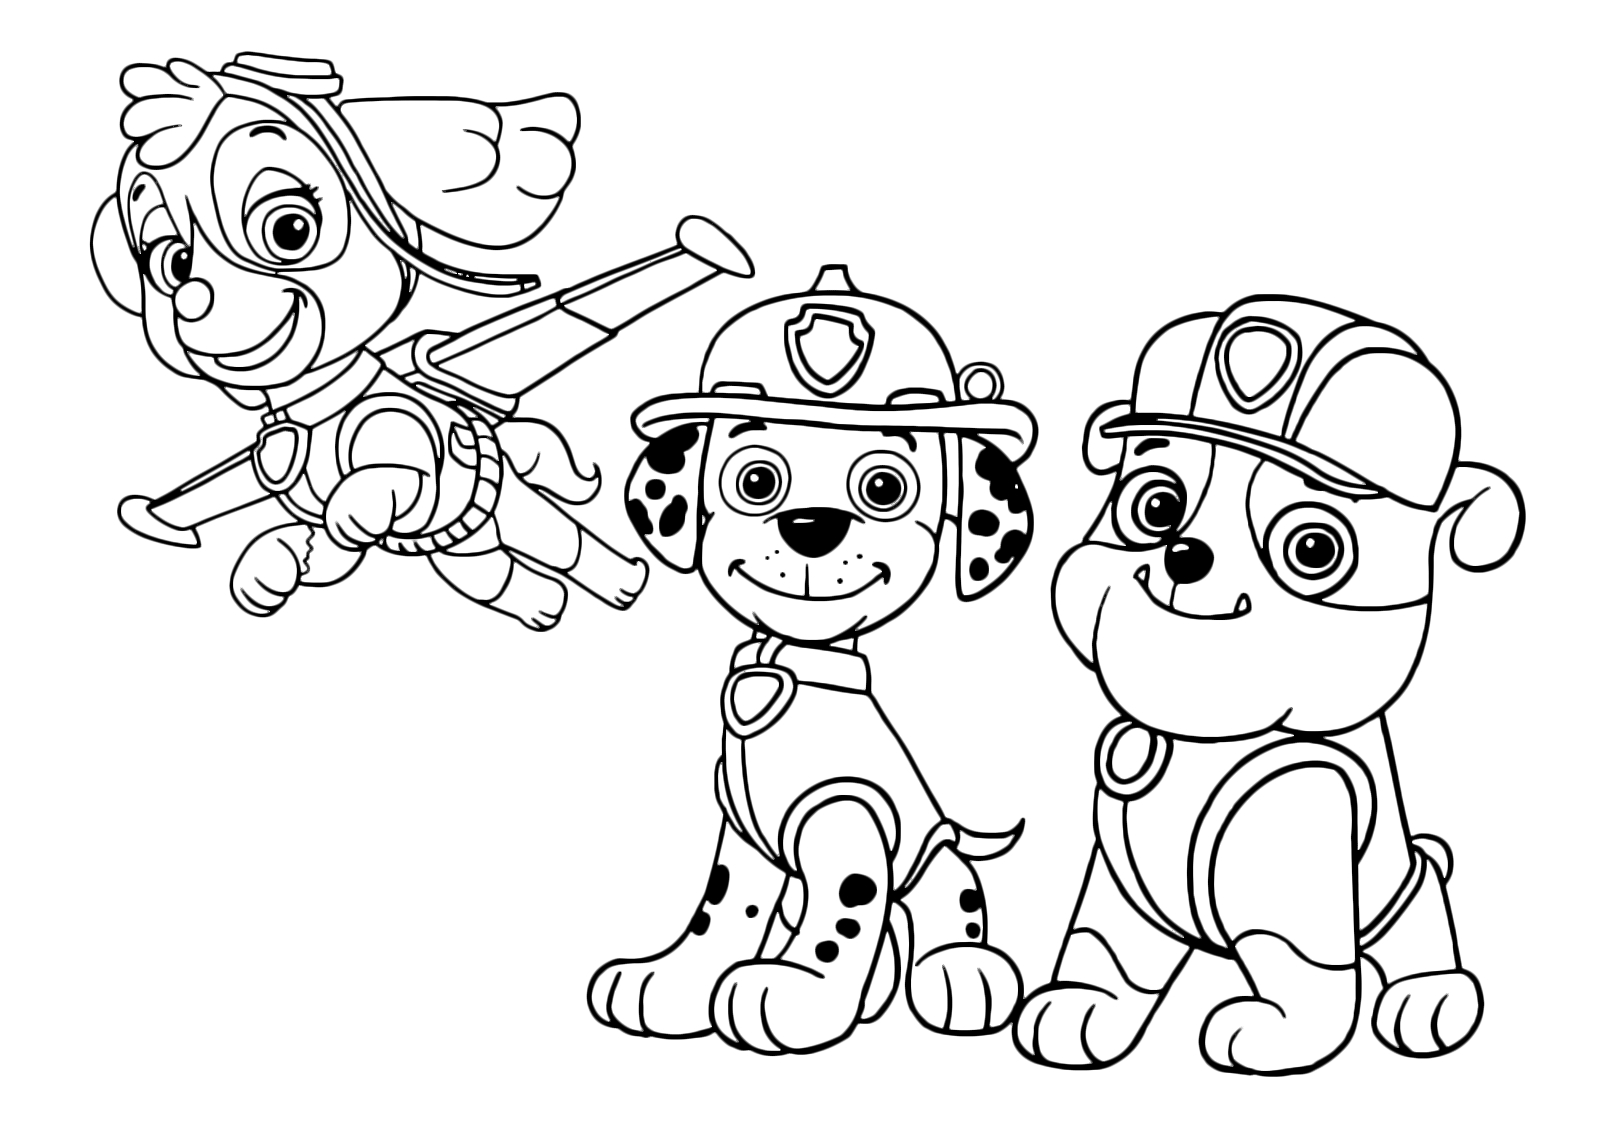 marshall paw patrol coloring page - skye marshall and bubble ready for action